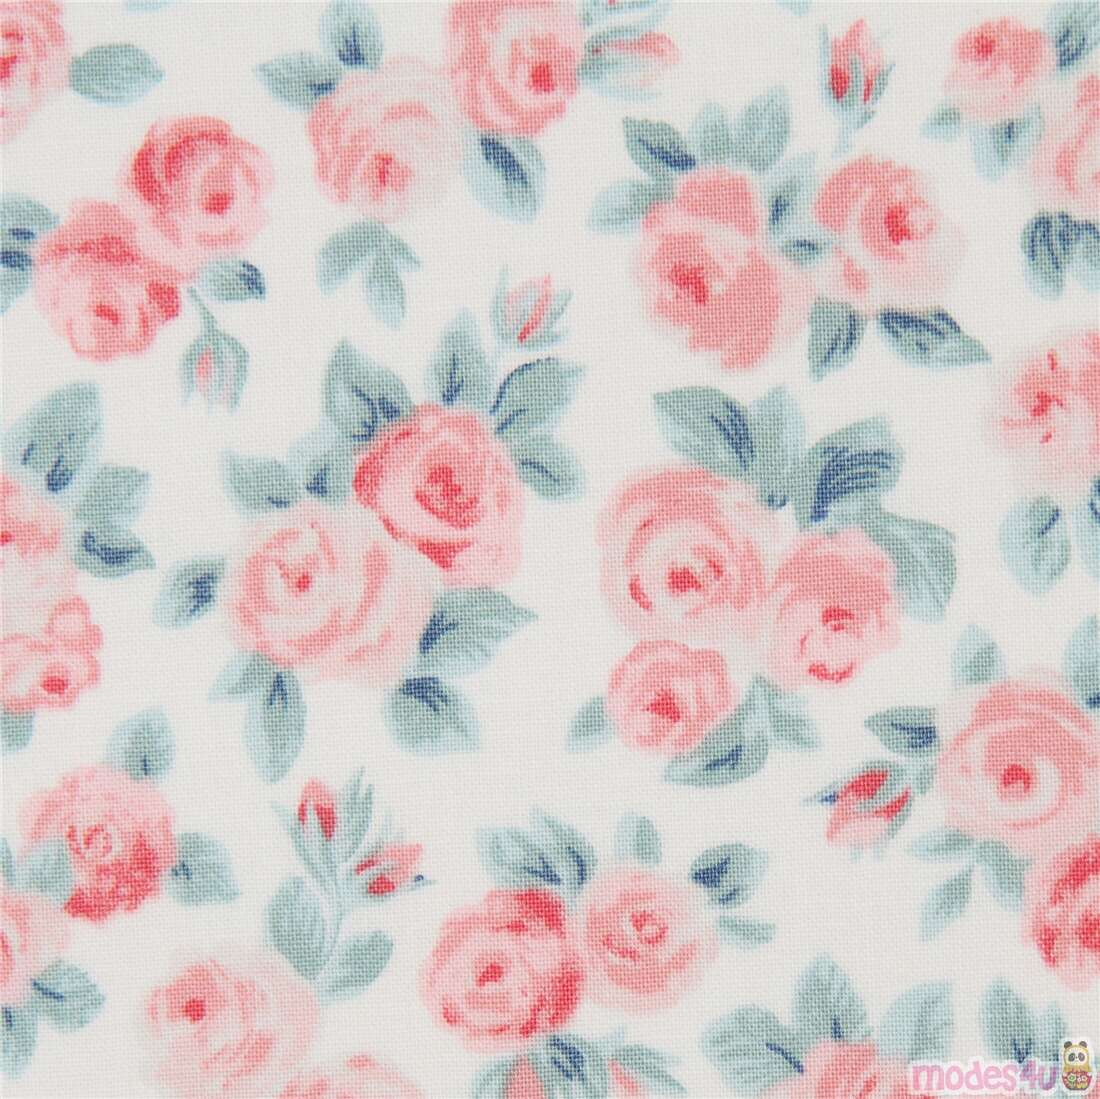 Retro Flowers in Pink Red /& Green on Cream Cotton Fabric Michael Miller FQ